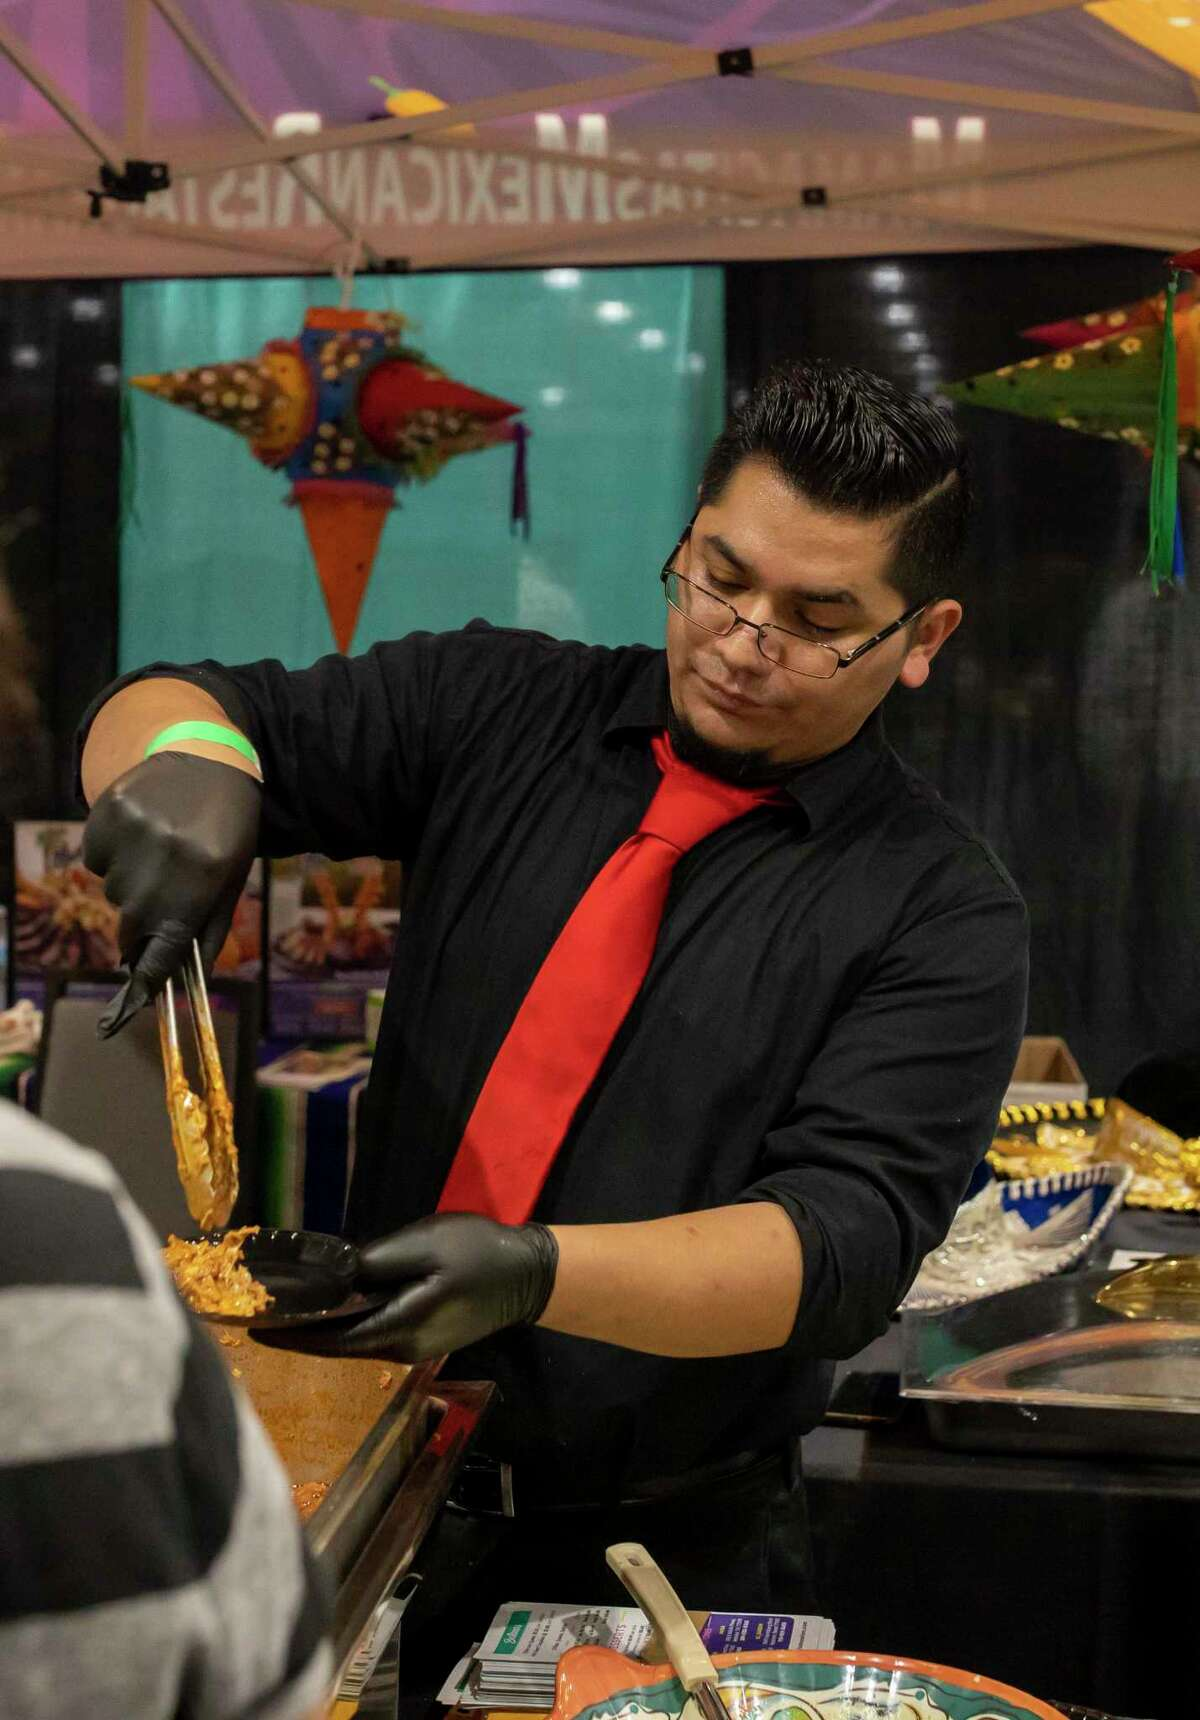 Mamacitas Mexican Restaurant served beans, rice and tamales and this year's annual Taste of the Town event at the Woodlands Waterway Marriott, Thursday, Jan. 16, 2020. The Woodlands Chamber of Commerce has held the event for 34 years and has drawn 2,000-3,000 this year.